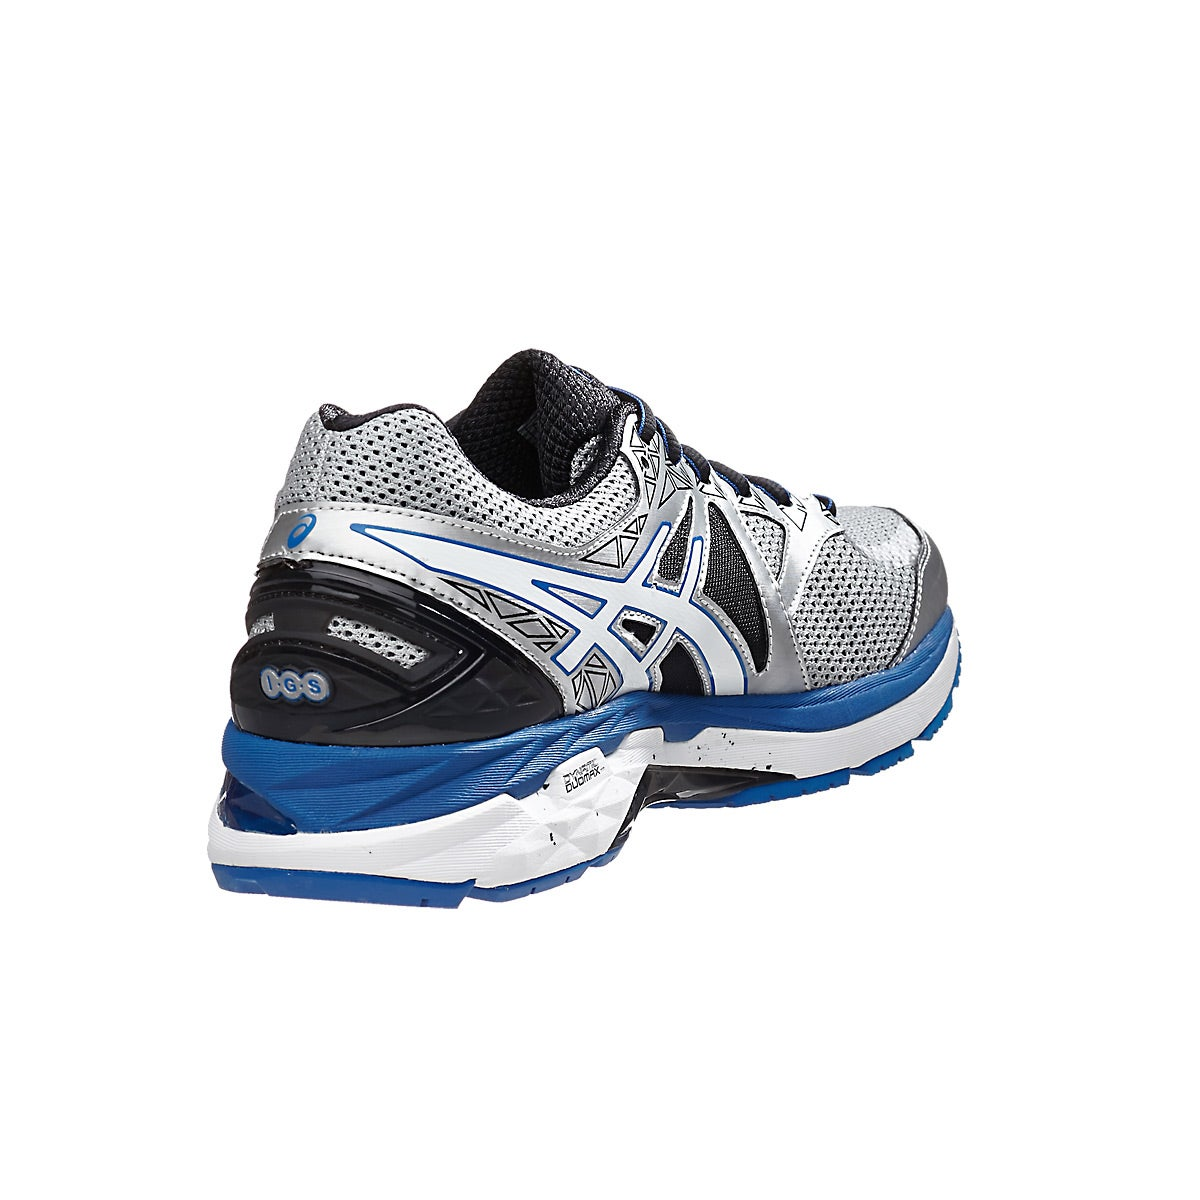 save off 60203 7ea68 ASICS GT 2000 4 Men s Shoes Silver White Royal 360° View   Running  Warehouse.